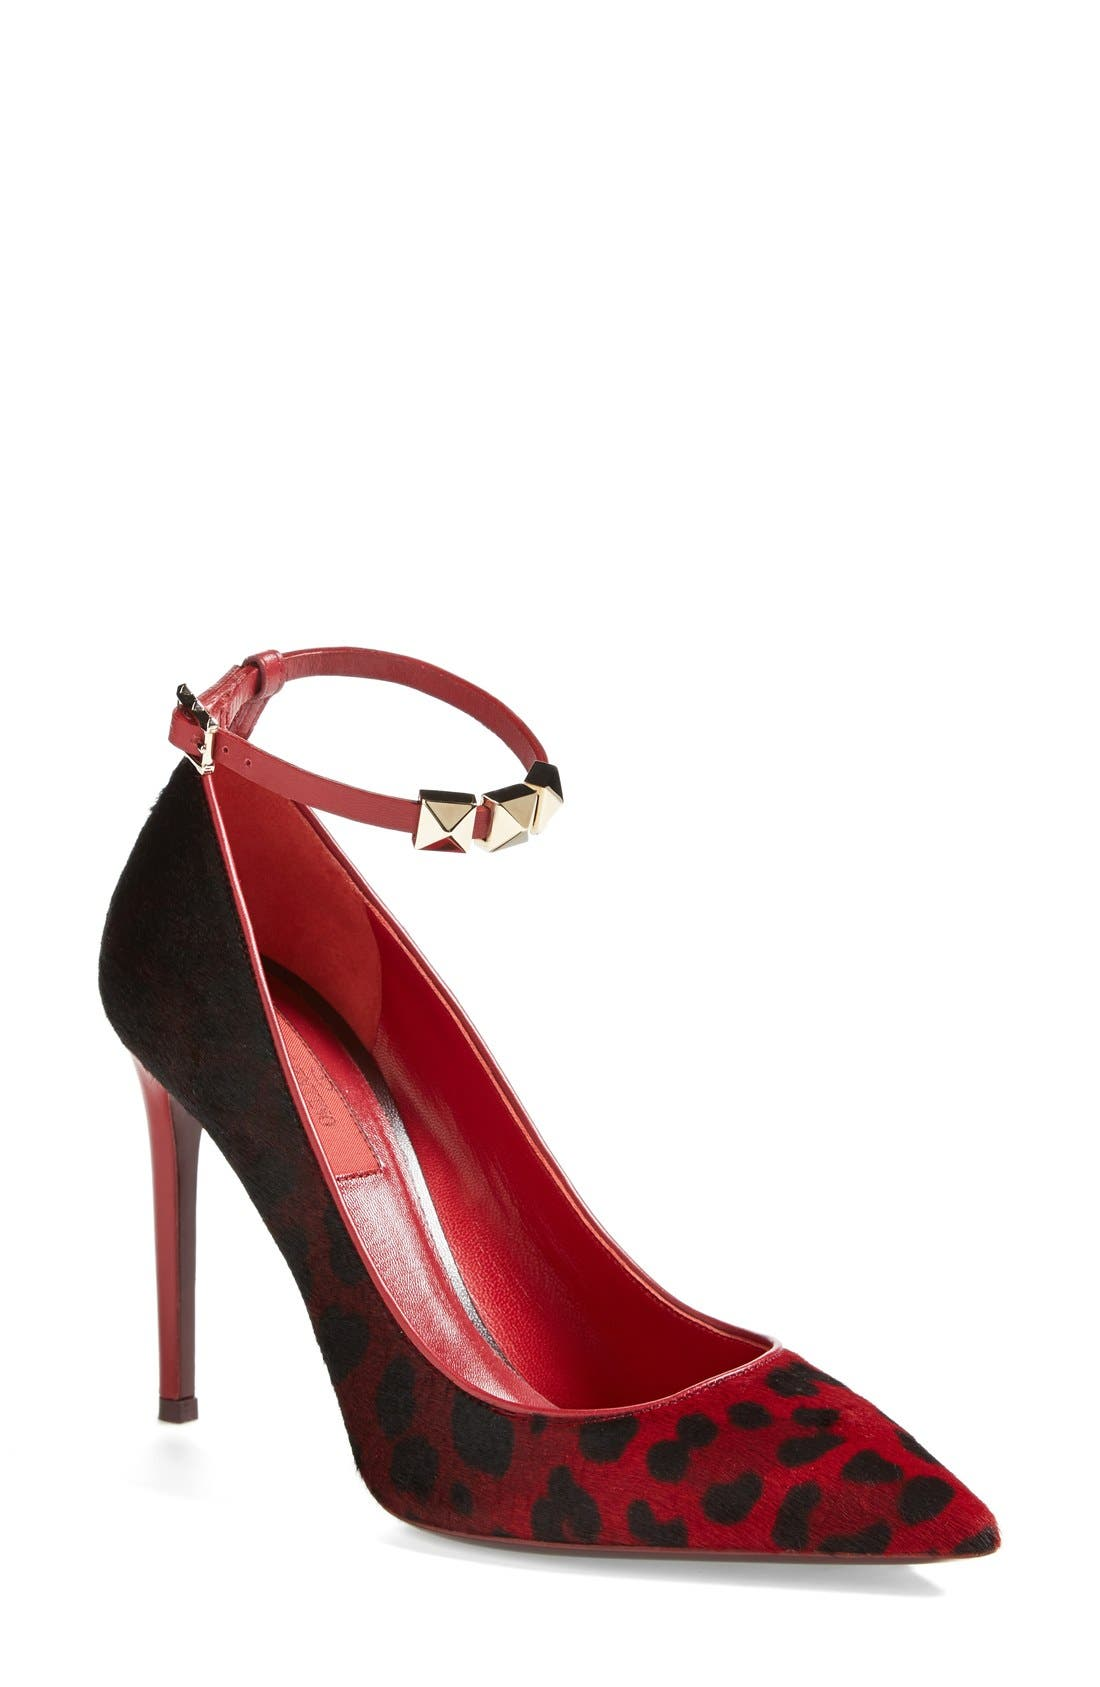 'Rouge Absolute' Ankle Strap Pump,                             Main thumbnail 1, color,                             600